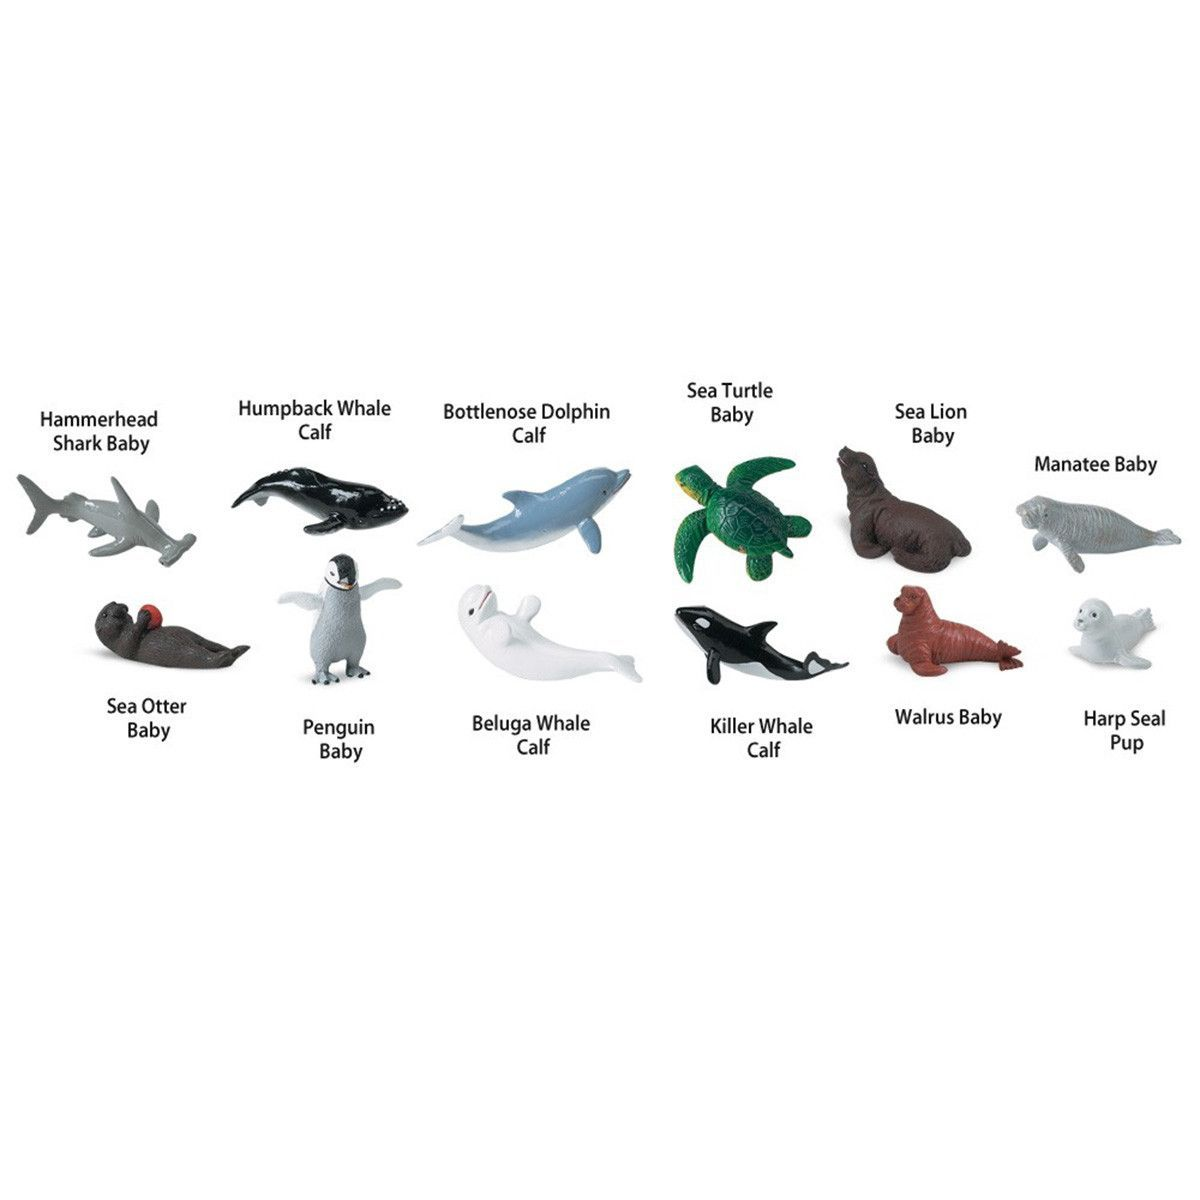 Toys & Hobbies Animals & Dinosaurs Animal Pack Baby Killer Whale Calf Mini Figure Play Toy Kids Ocean Sea Creature